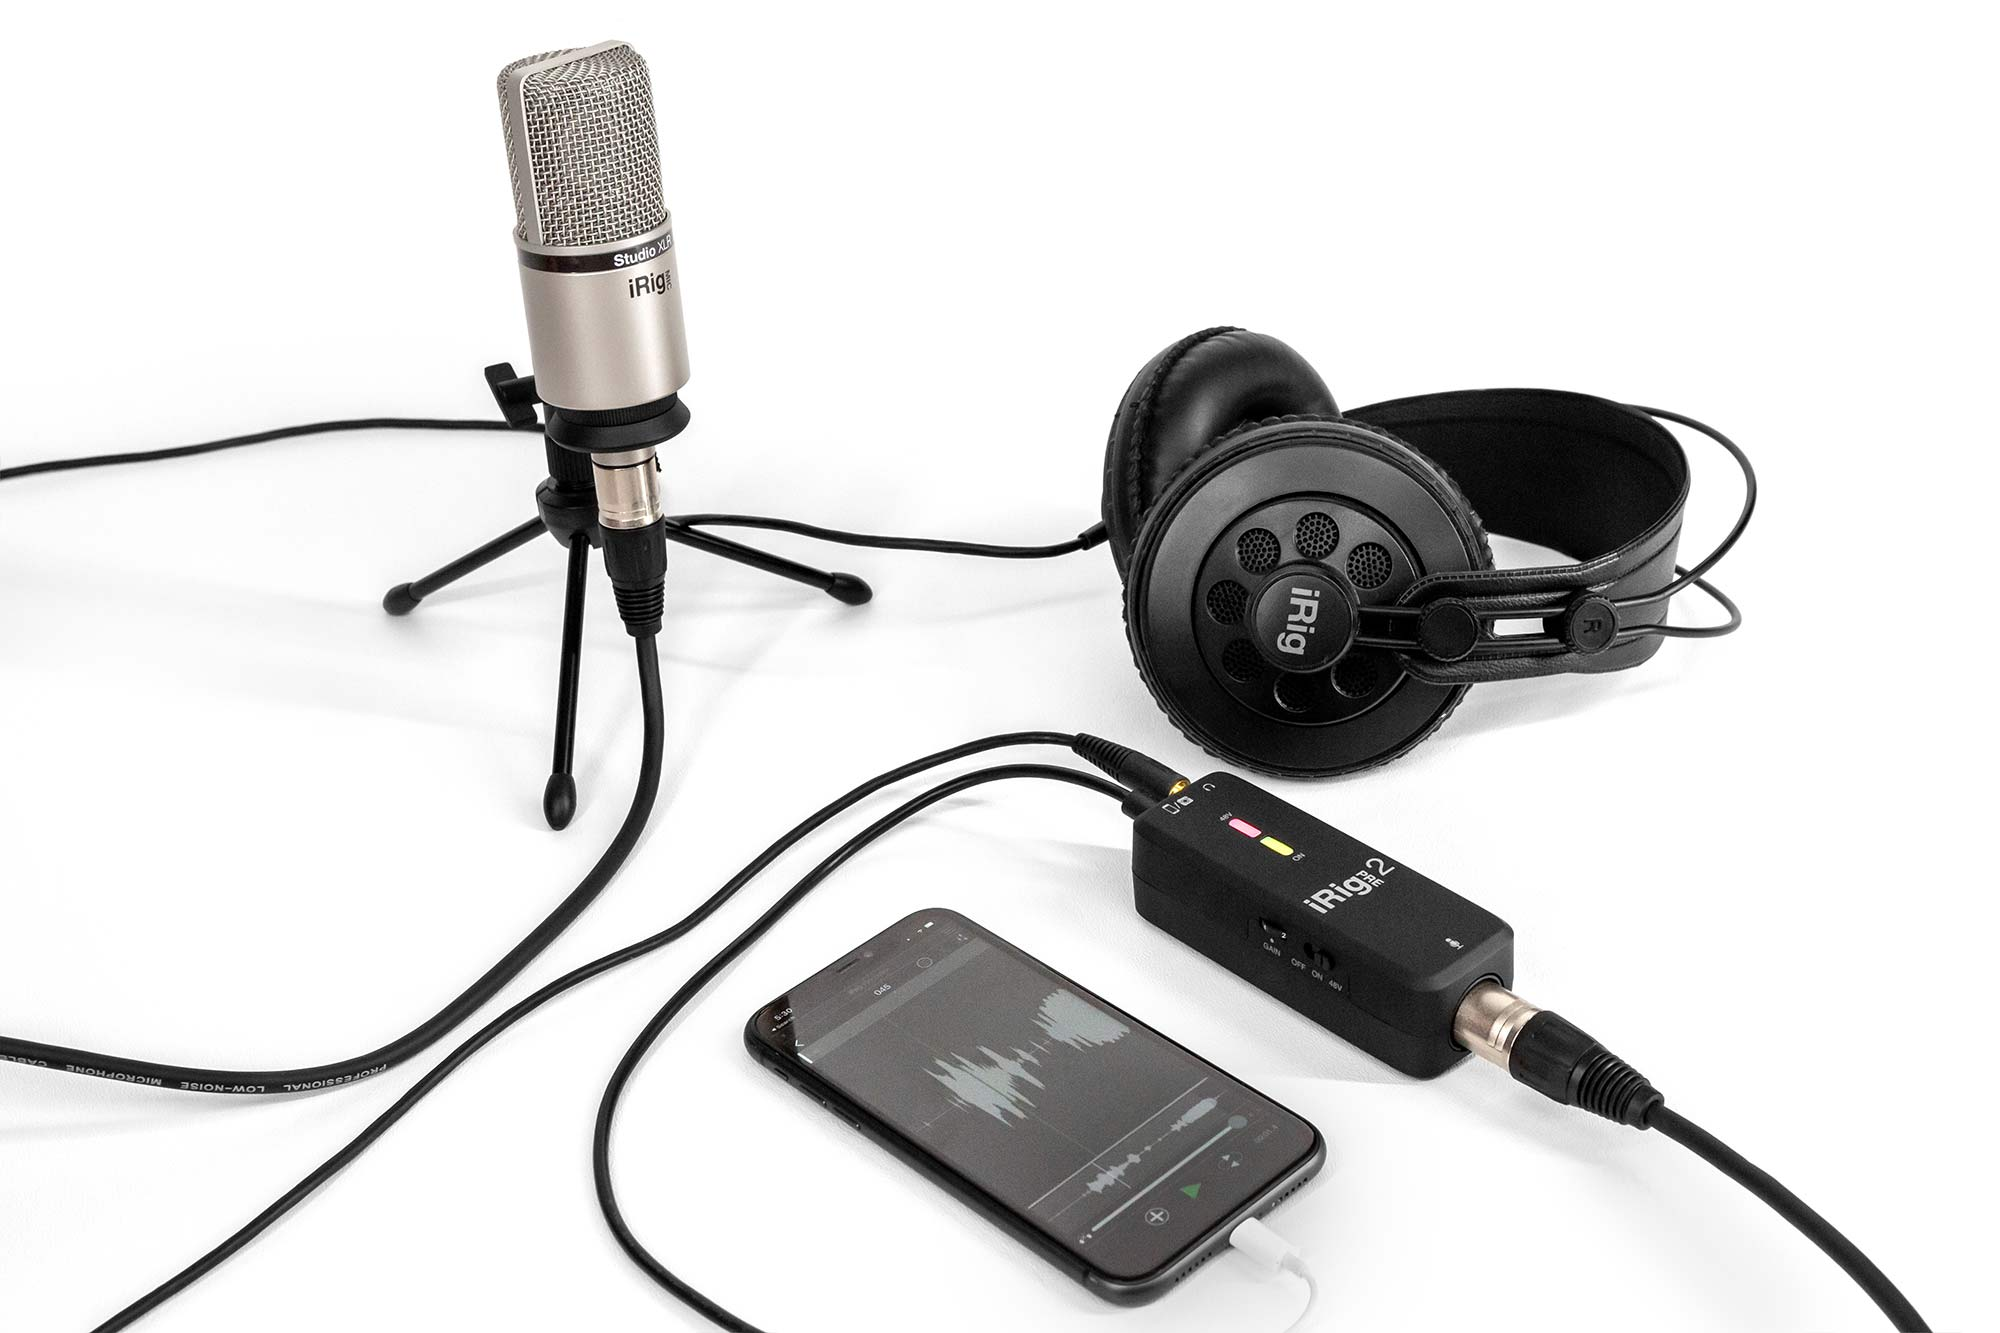 iRig Pre 2 with iPhone